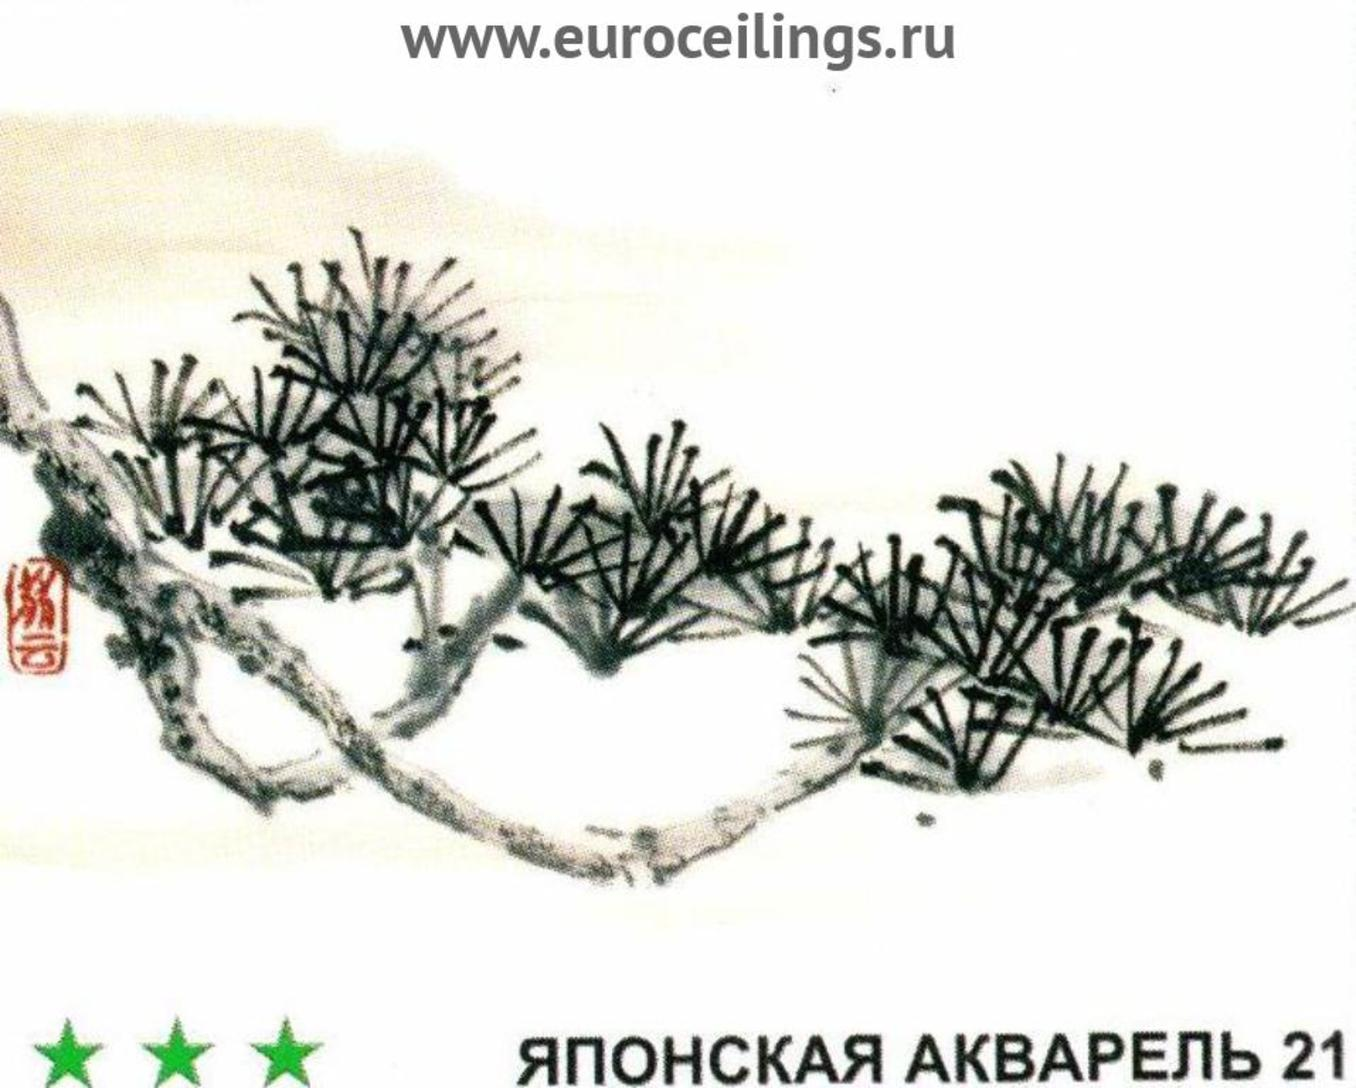 http://euroceilings.ru/catalogs/foto-ceilings/max/regular_pattern-021-3.jpg